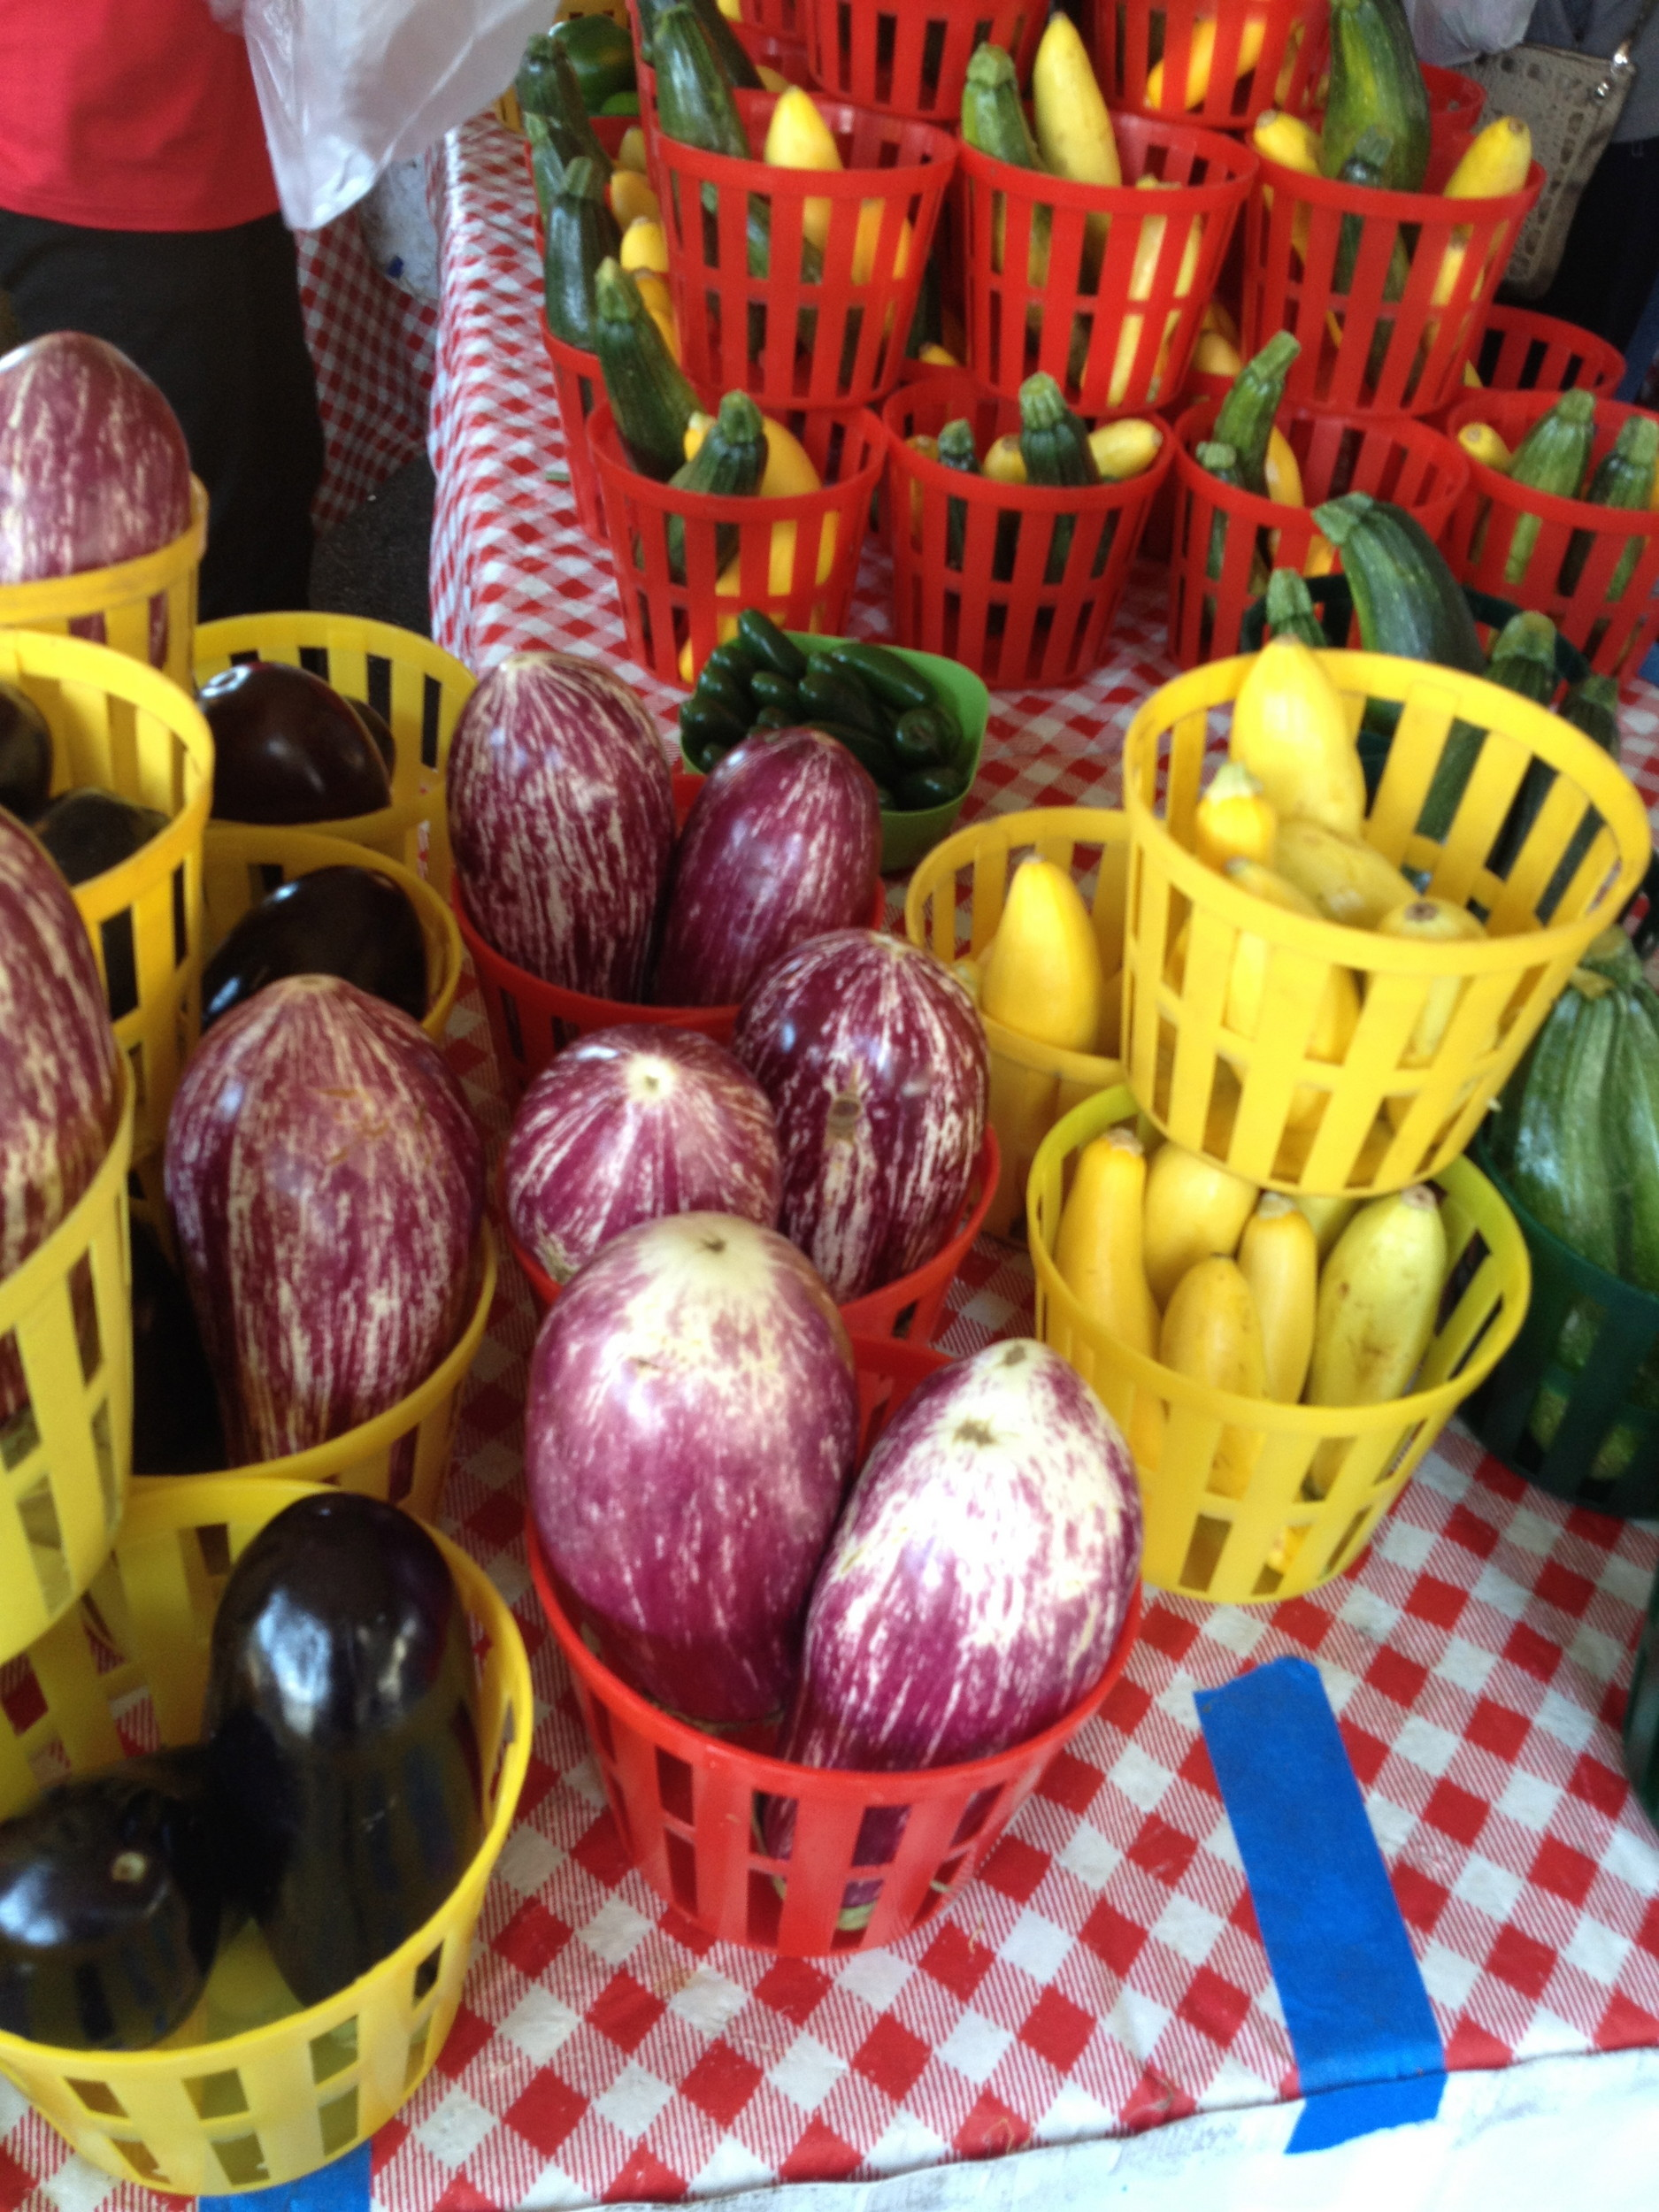 The farmers market is one of RAM's most popular features. FUN FACT: Aubergines contain more nicotine than any other edible plant, though, the amount is considered negligible.